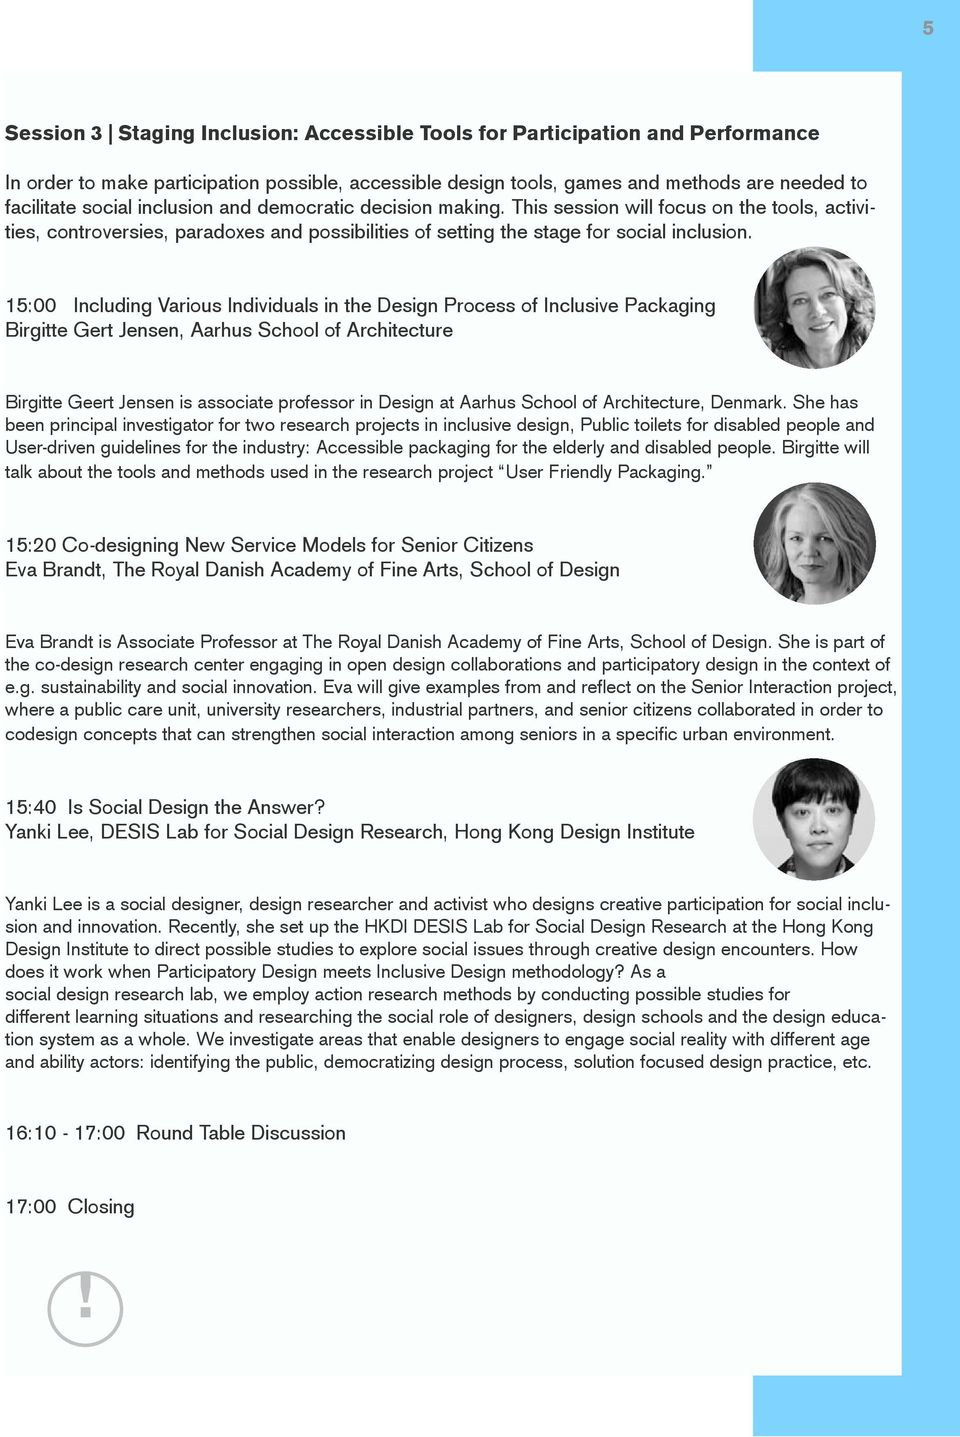 15:00 Including Various Individuals in the Design Process of Inclusive Packaging Birgitte Gert Jensen, Aarhus School of Architecture Birgitte Geert Jensen is associate professor in Design at Aarhus